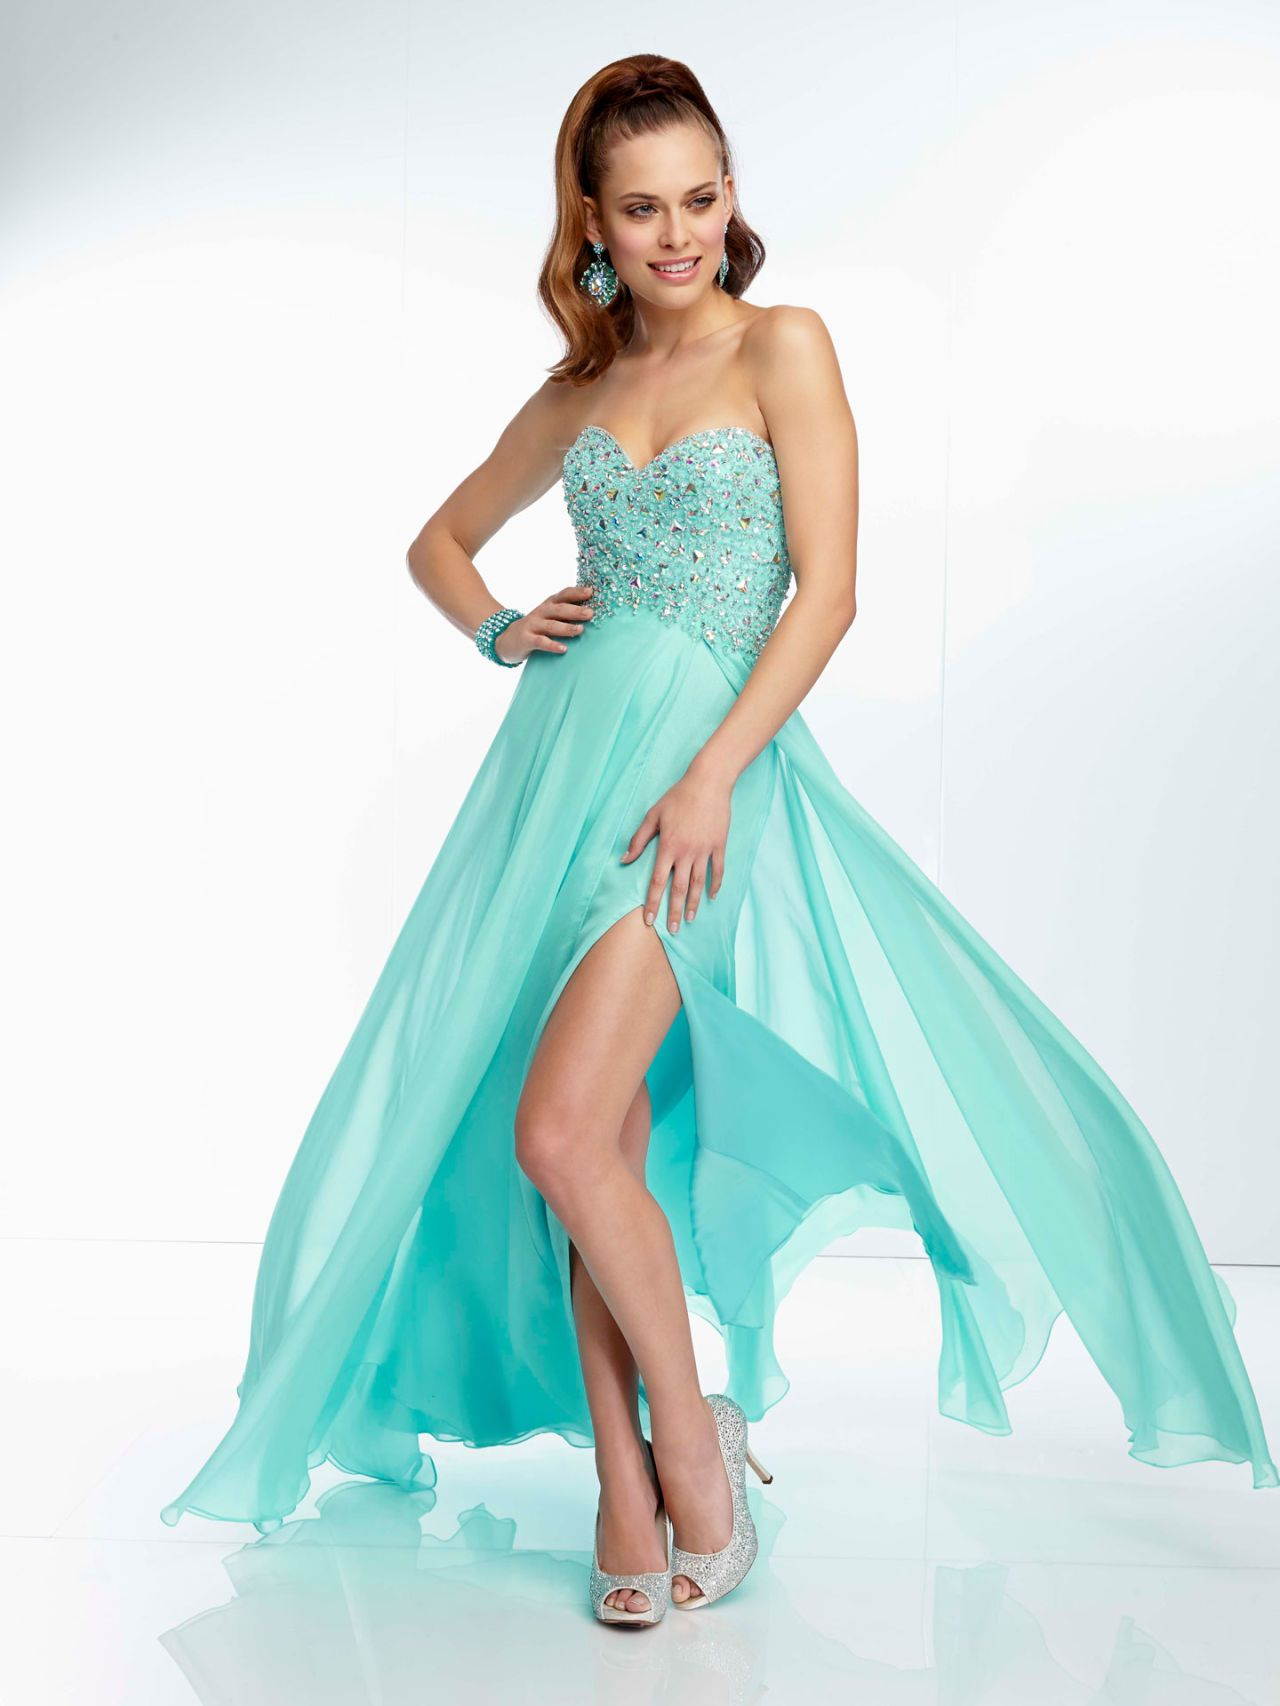 Enchanting Trixxi Prom Dresses Vignette - All Wedding Dresses ...